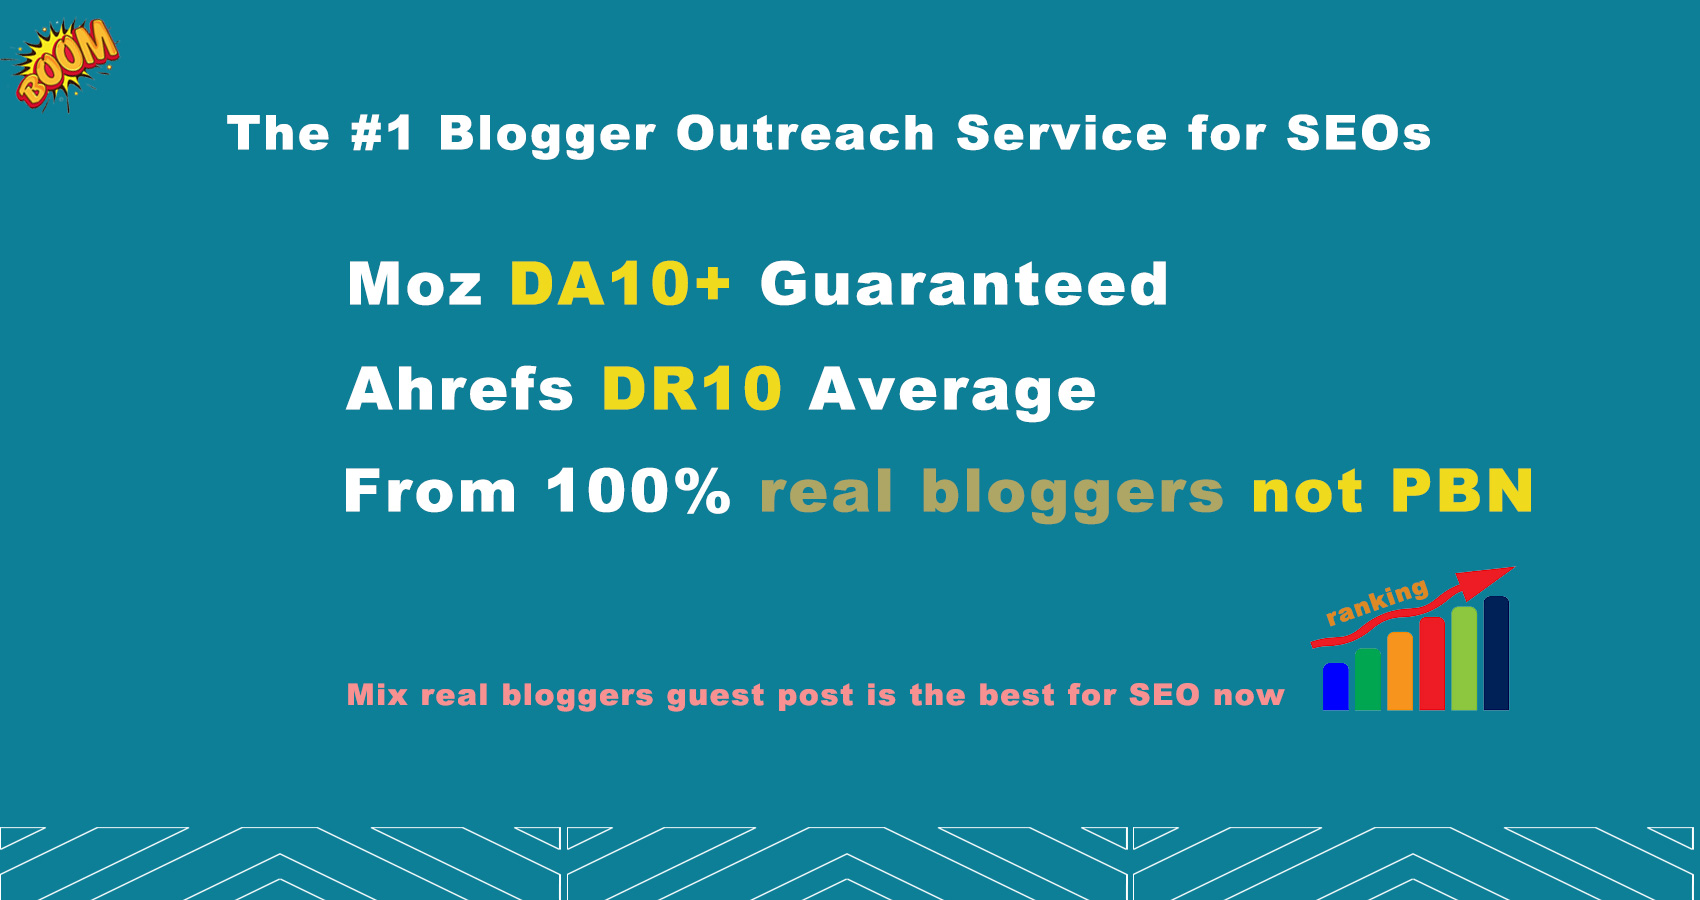 Real bloggers post - Natural,  relevant,  NOT PBN - 1 Blogger Outreach Service for SEO